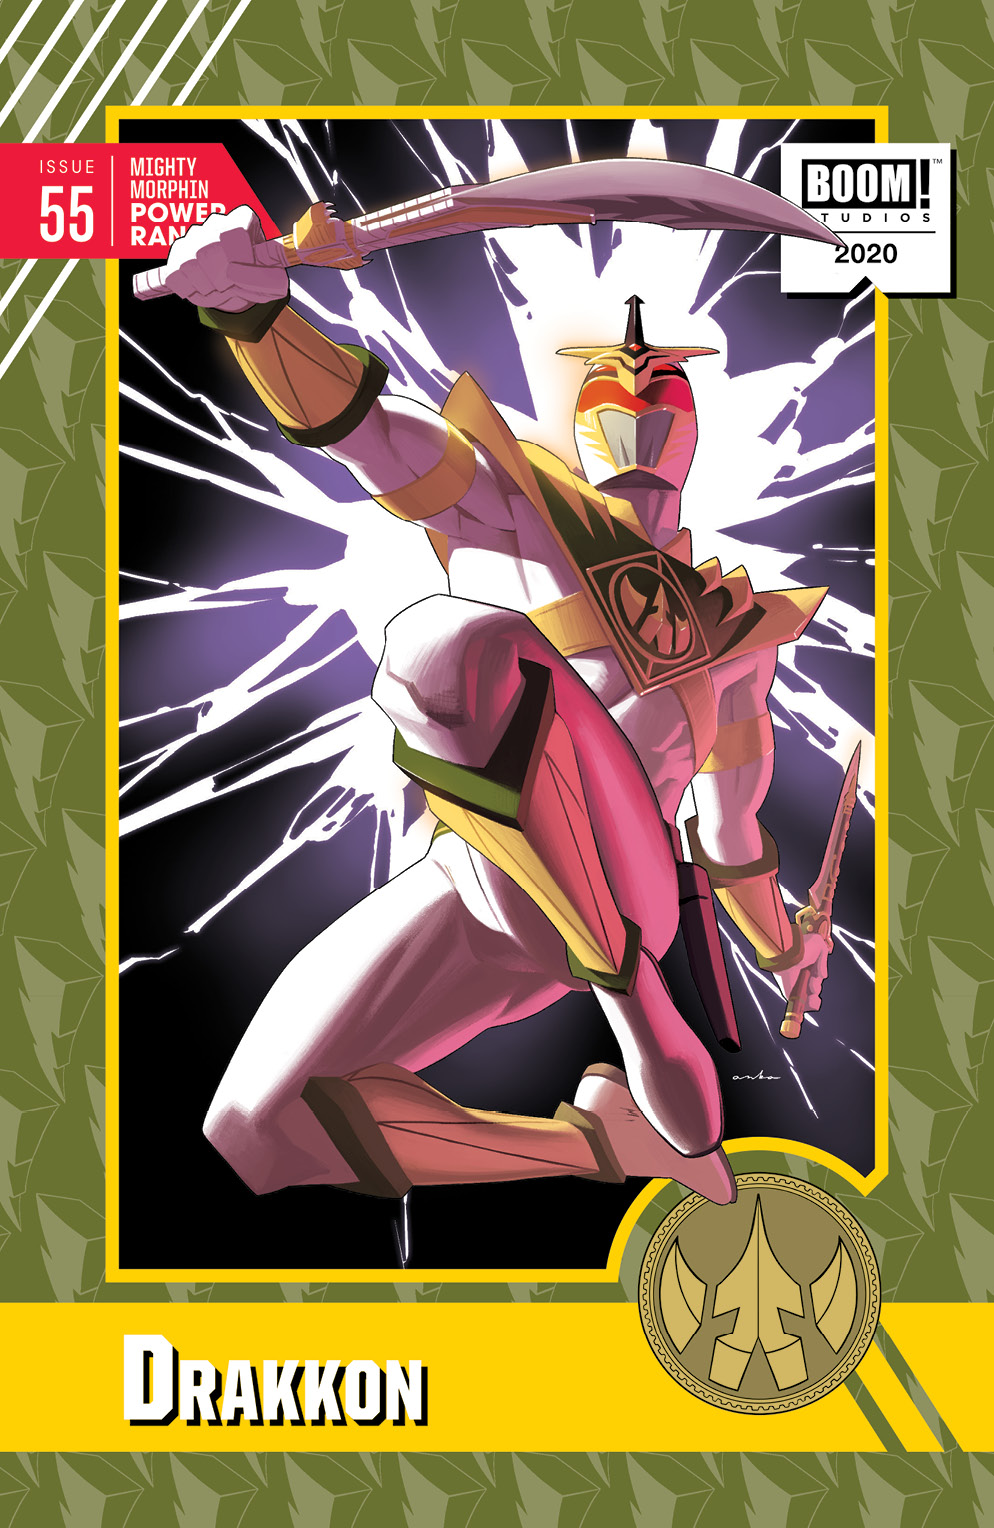 MMPR_055_Cover_C_TradingCard_001